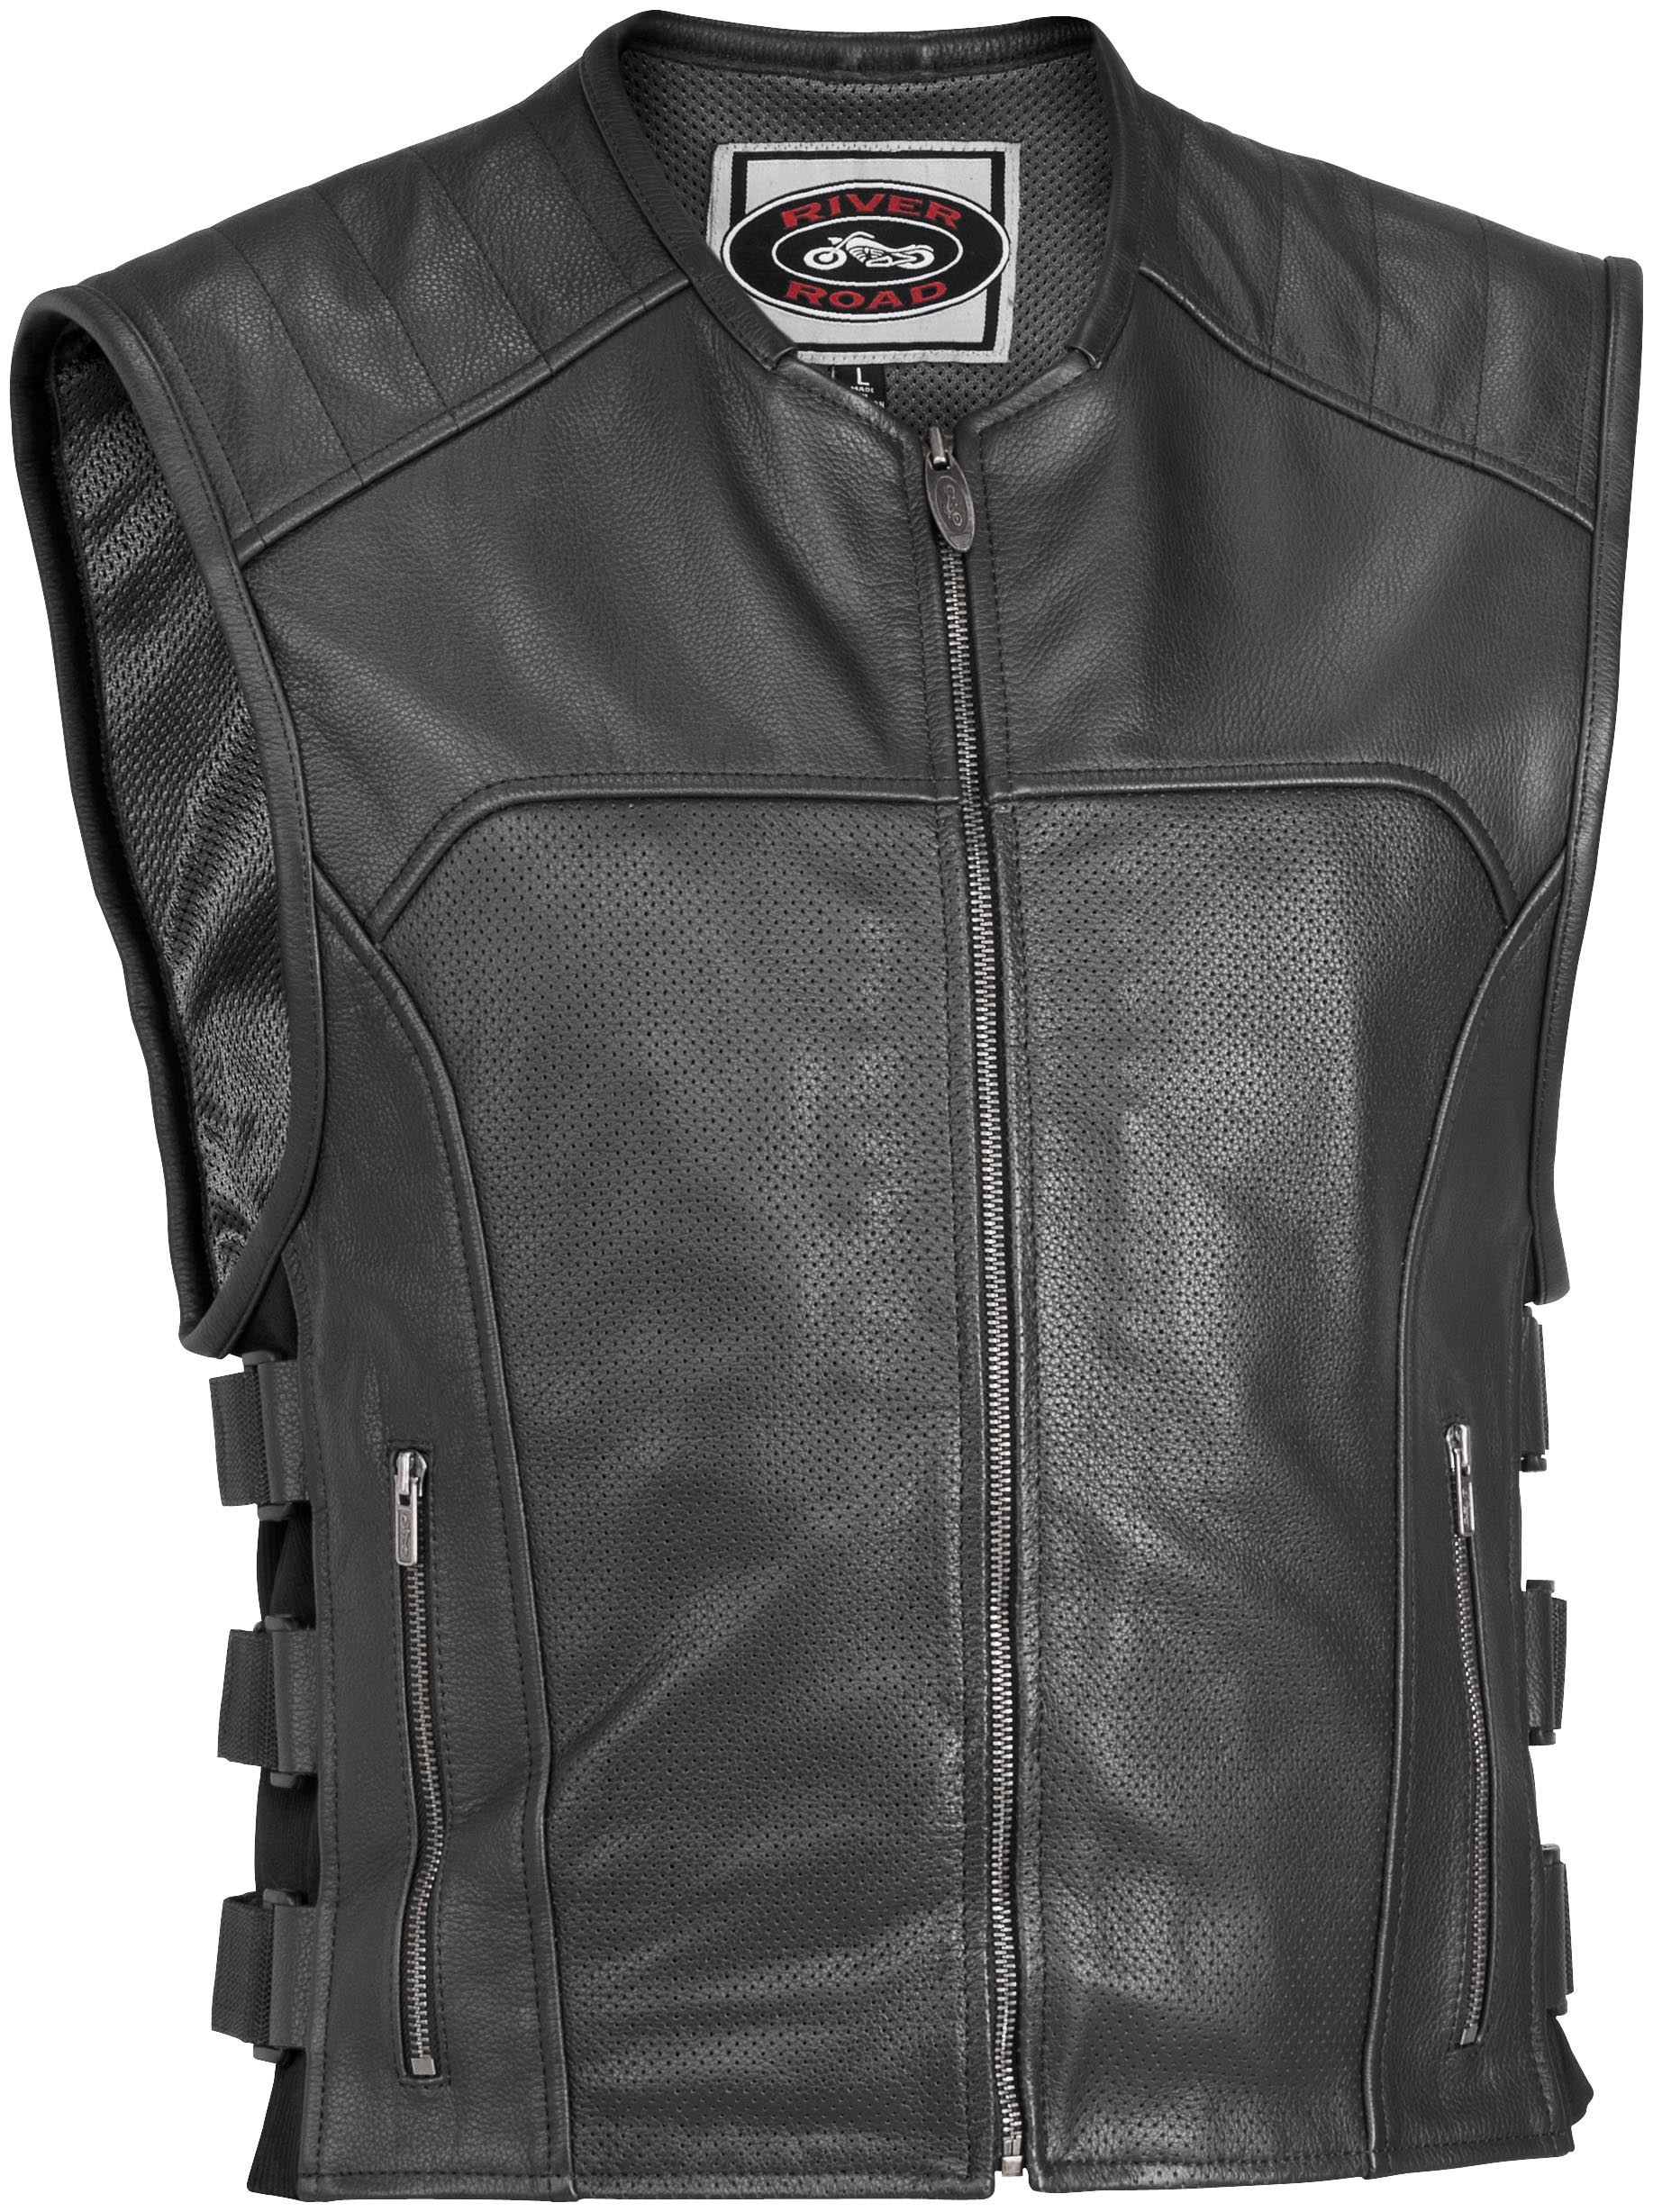 Ruffian Perforated Leather Vest